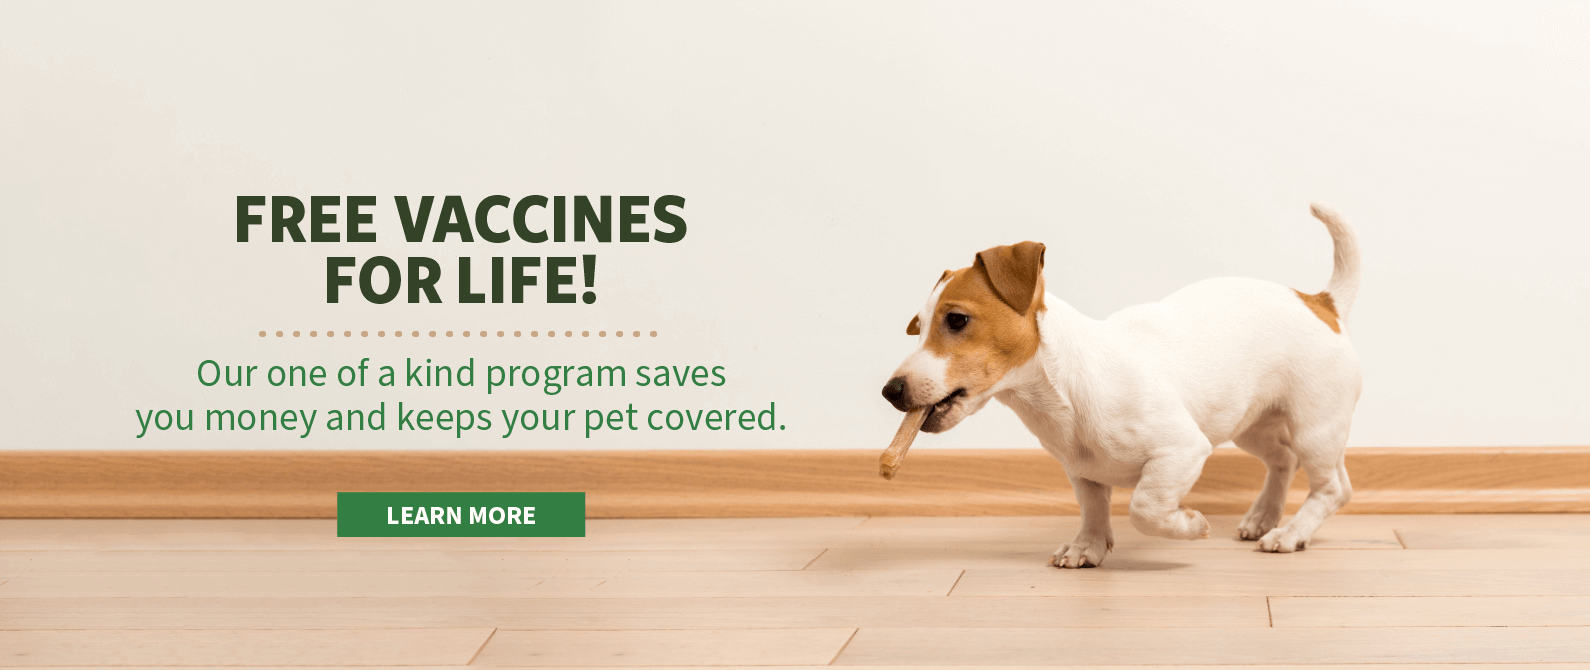 Free Vaccines for Life